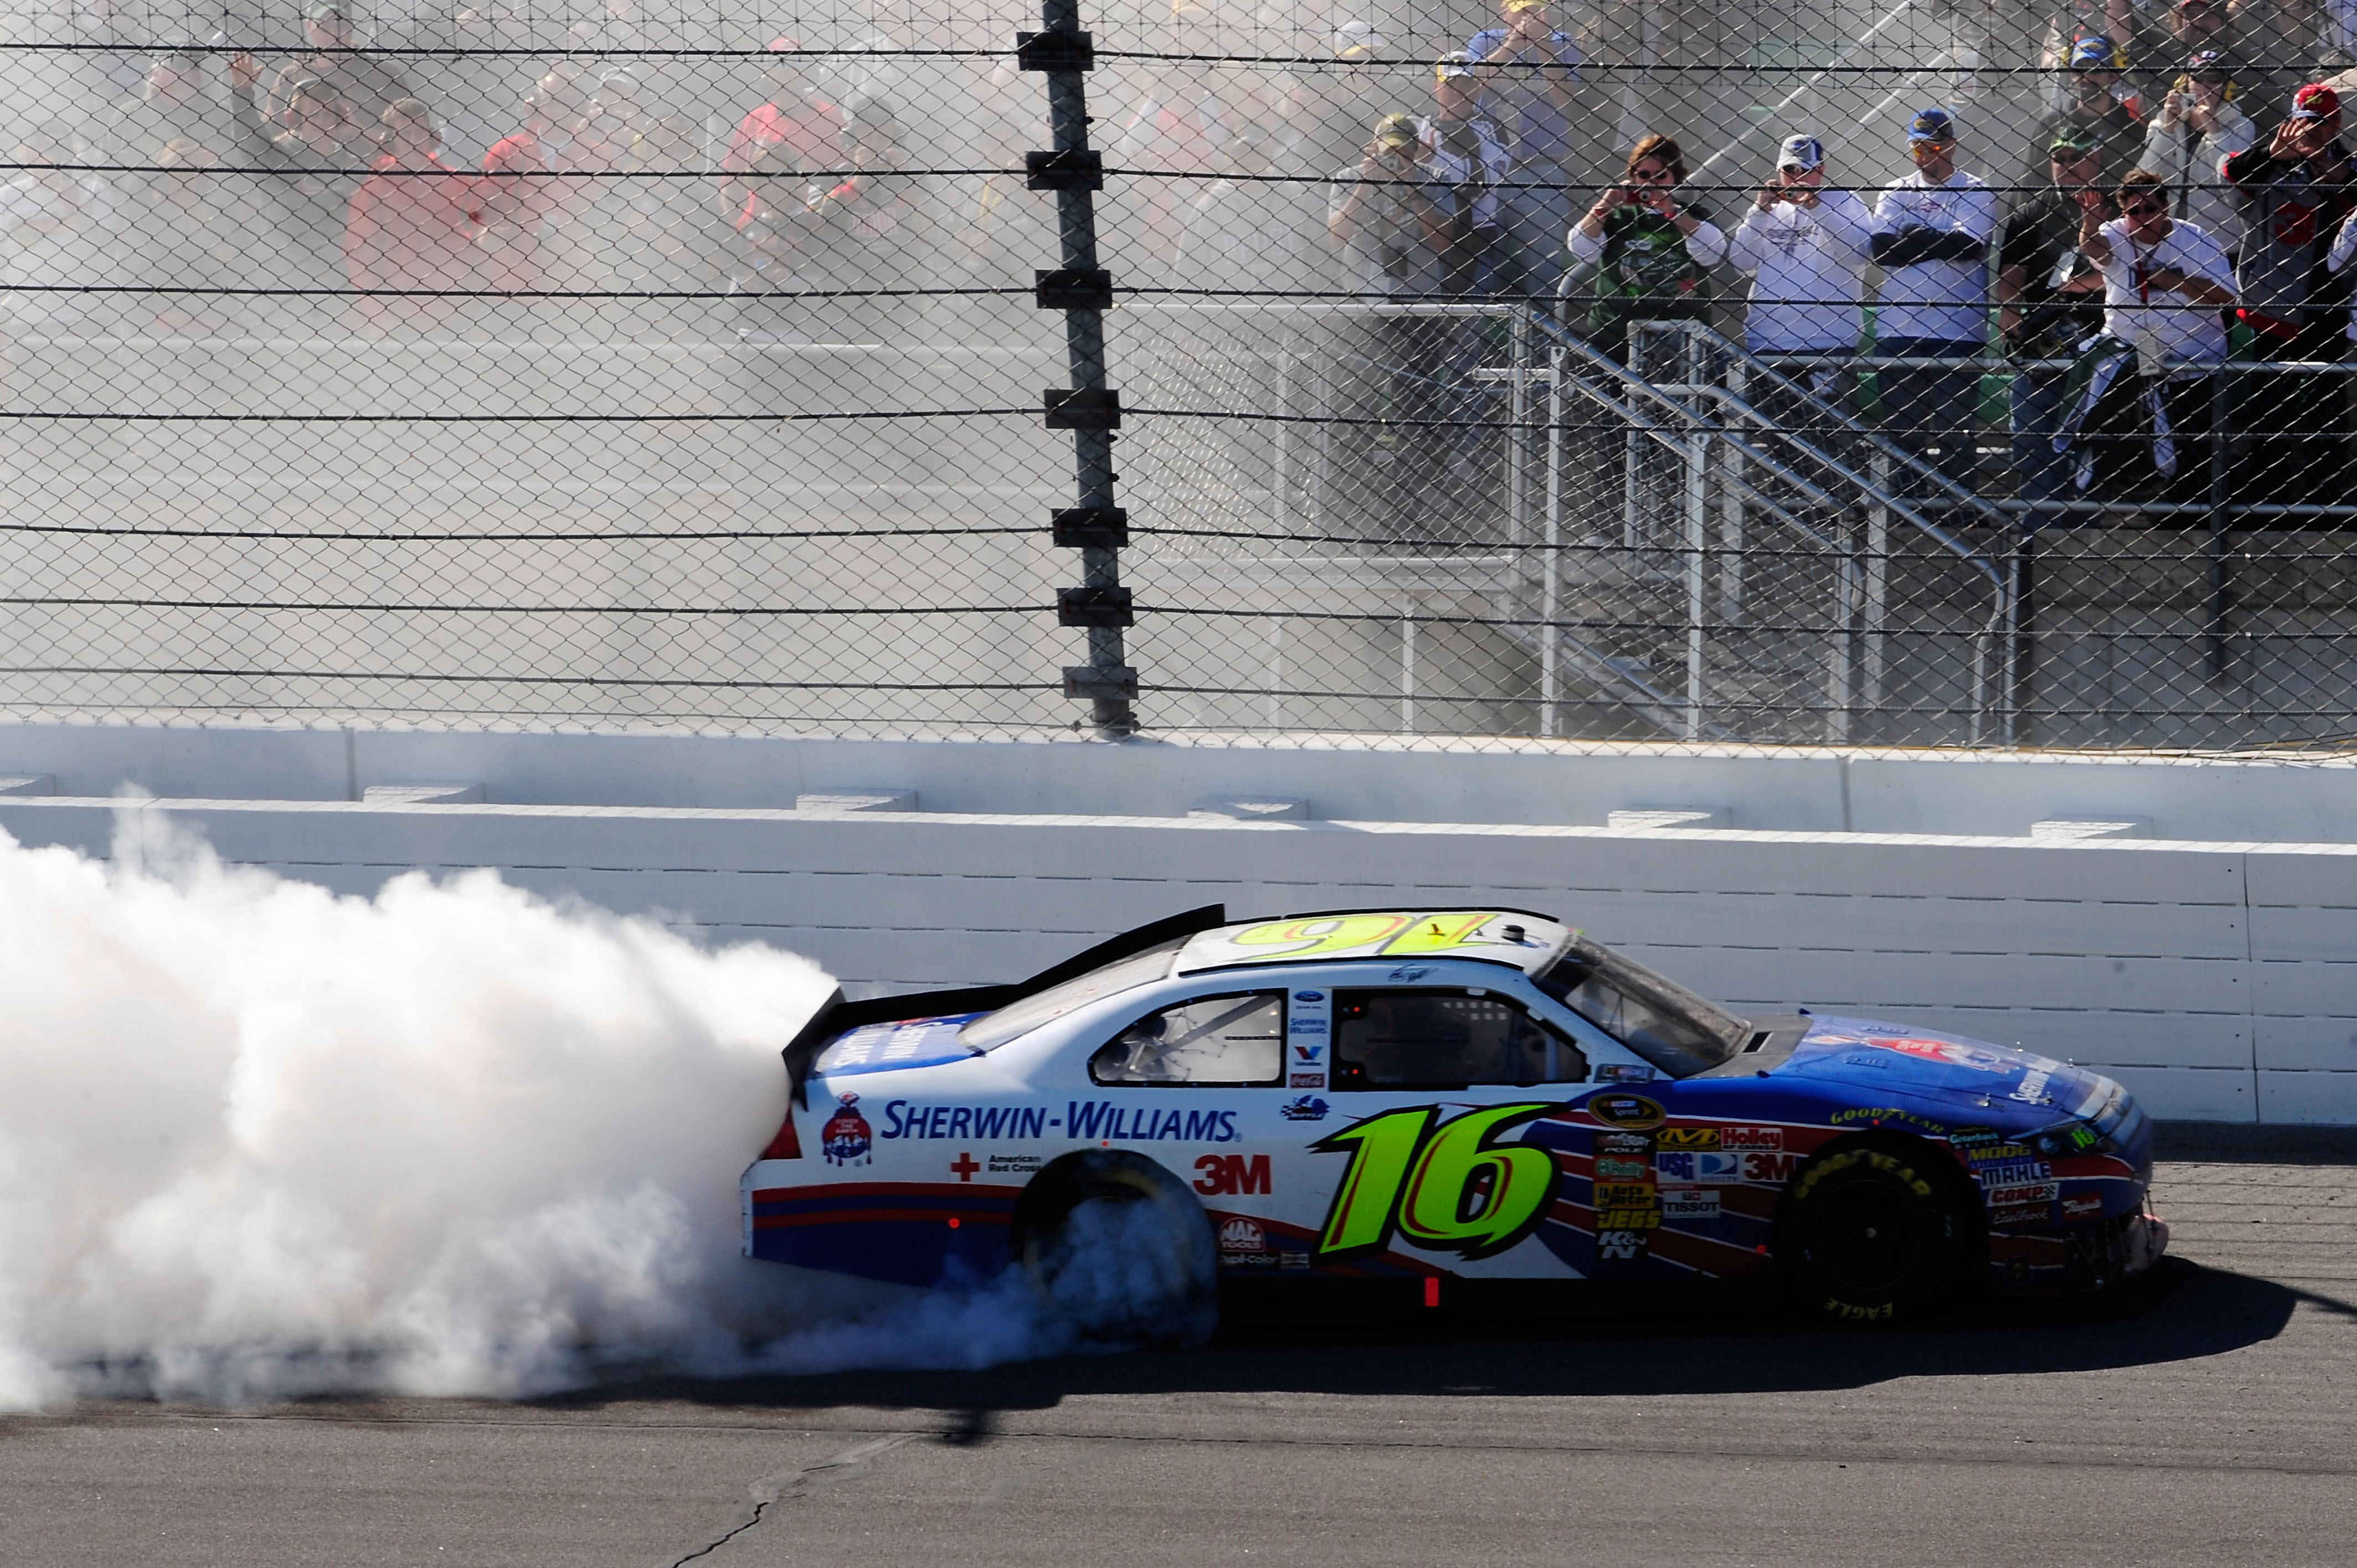 KANSAS CITY, KS - OCTOBER 03:  Greg Biffle, driver of the #16 3M Ford, celebrates with a burnout after winning the NASCAR Sprint Cup Series Price Chopper 400 on October 3, 2010 in Kansas City, Kansas.  (Photo by Rusty Jarrett/Getty Images)